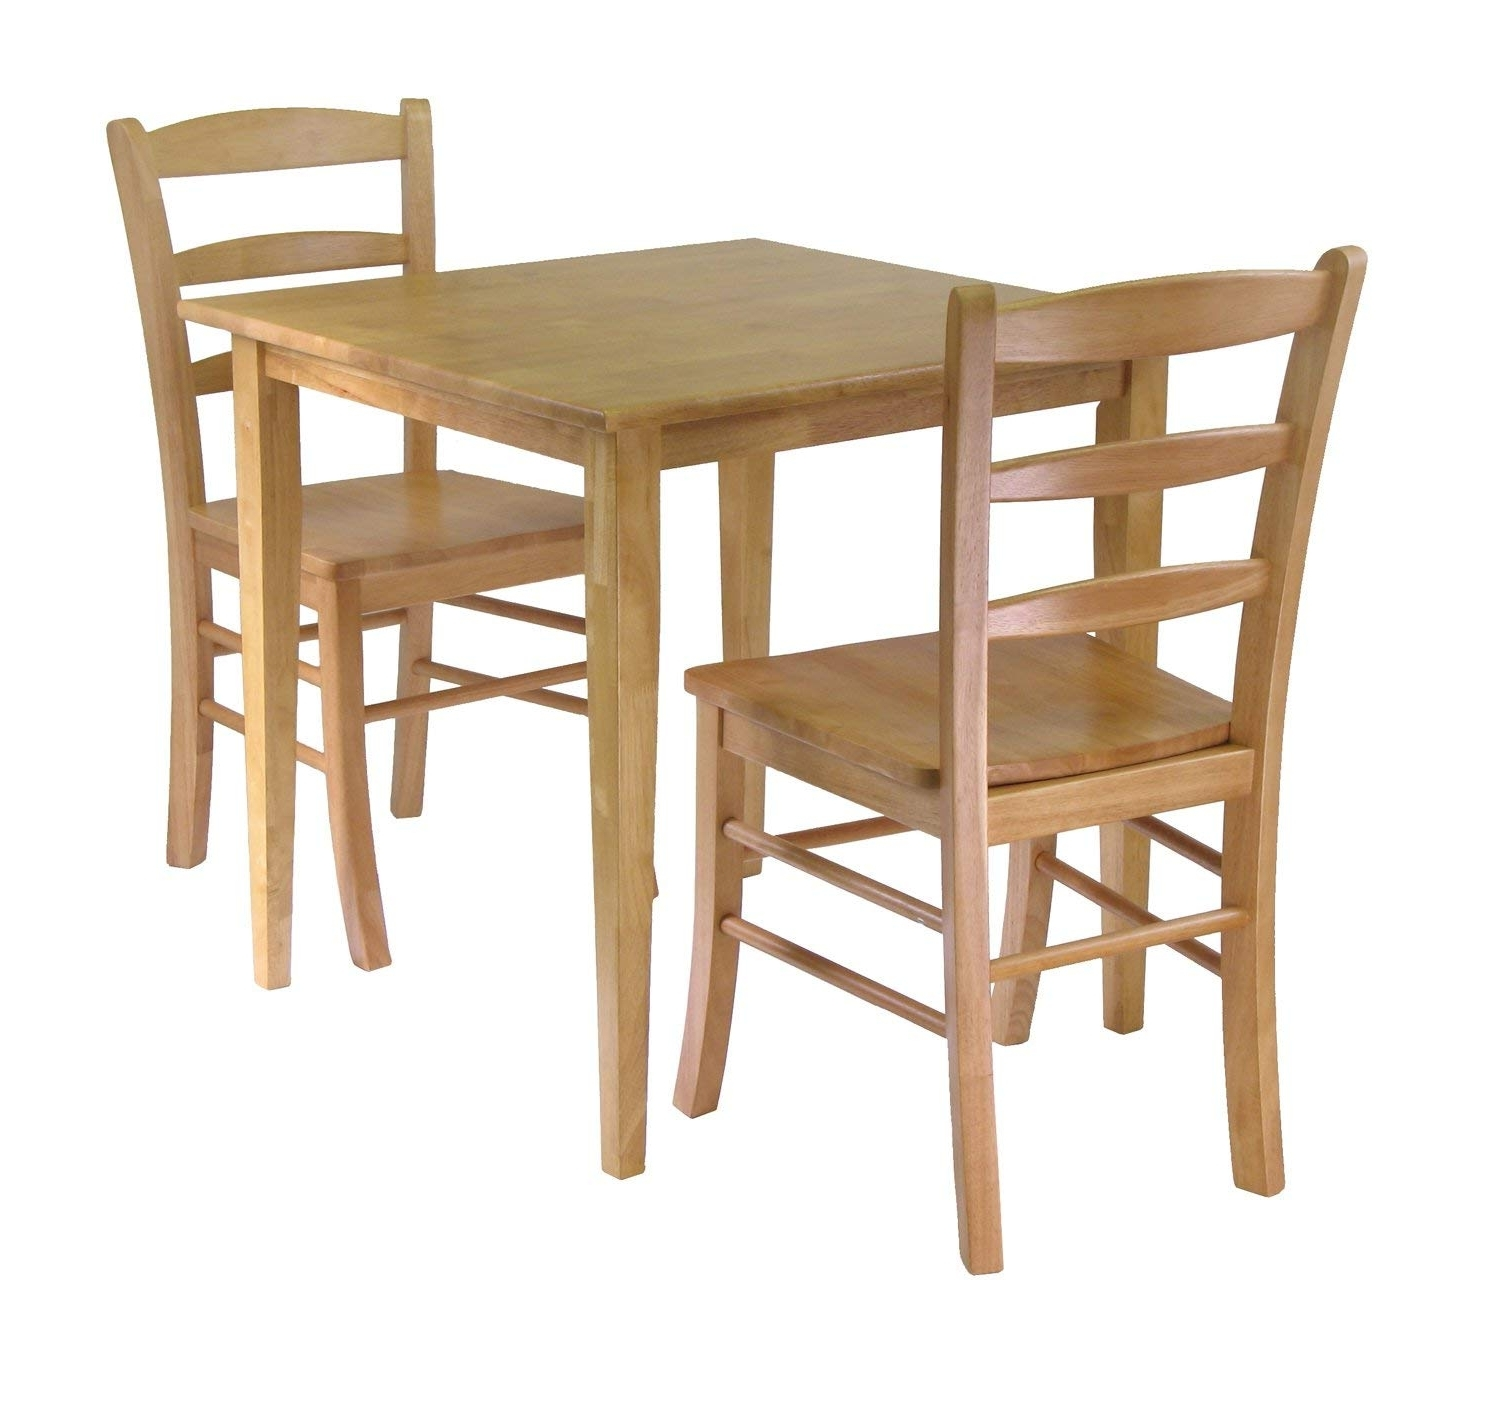 Amazon – Winsome Groveland 3 Piece Wood Dining Set, Light Oak Intended For Most Up To Date Oak Dining Tables Sets (View 2 of 25)